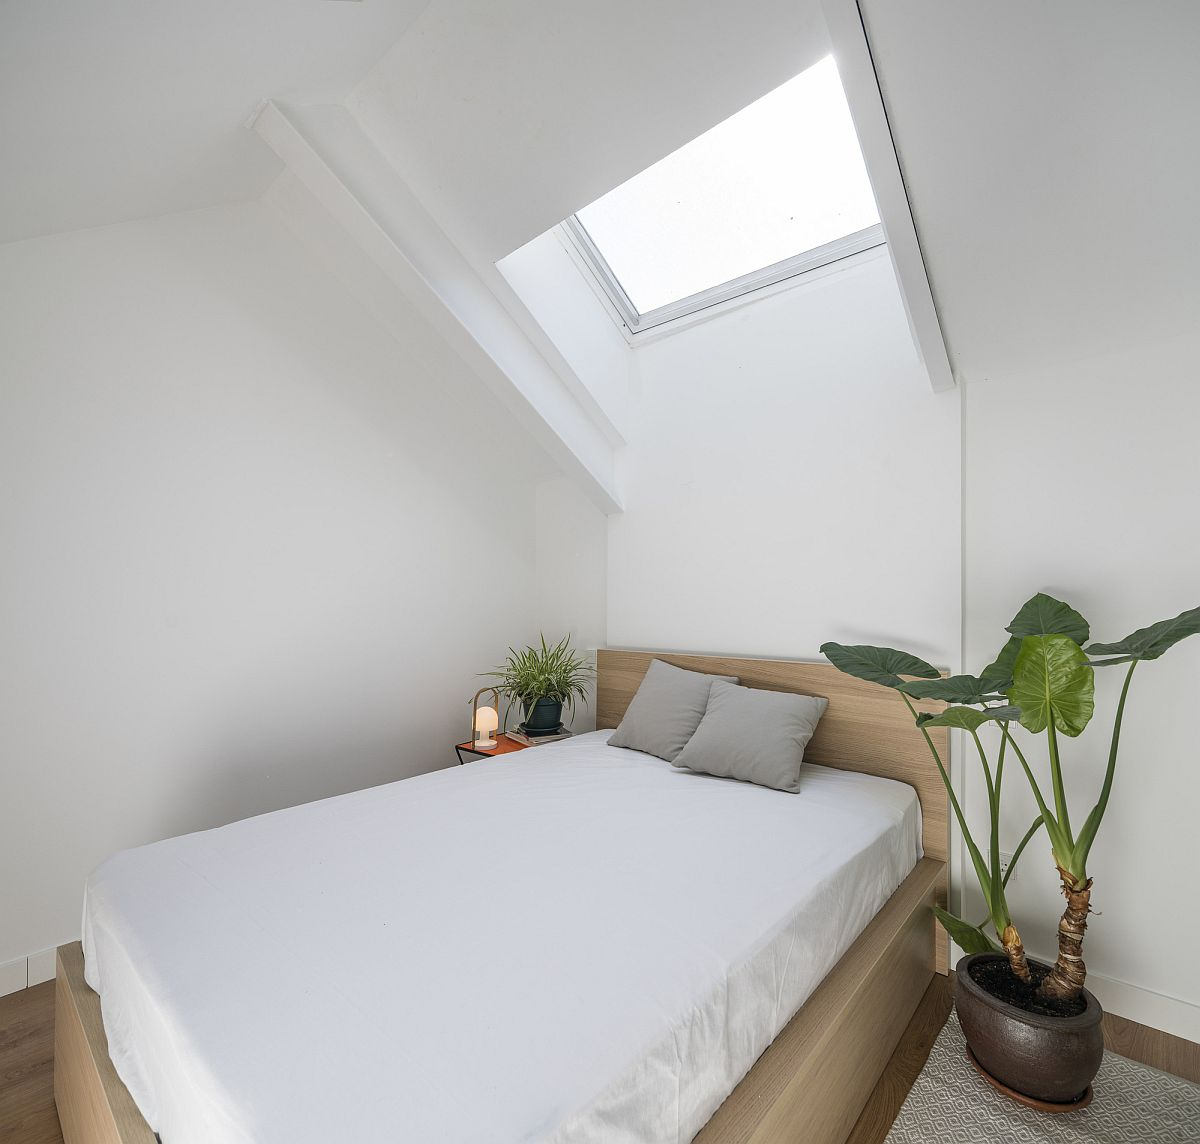 Small and minimal bedroom of the attic apartment with a skylight